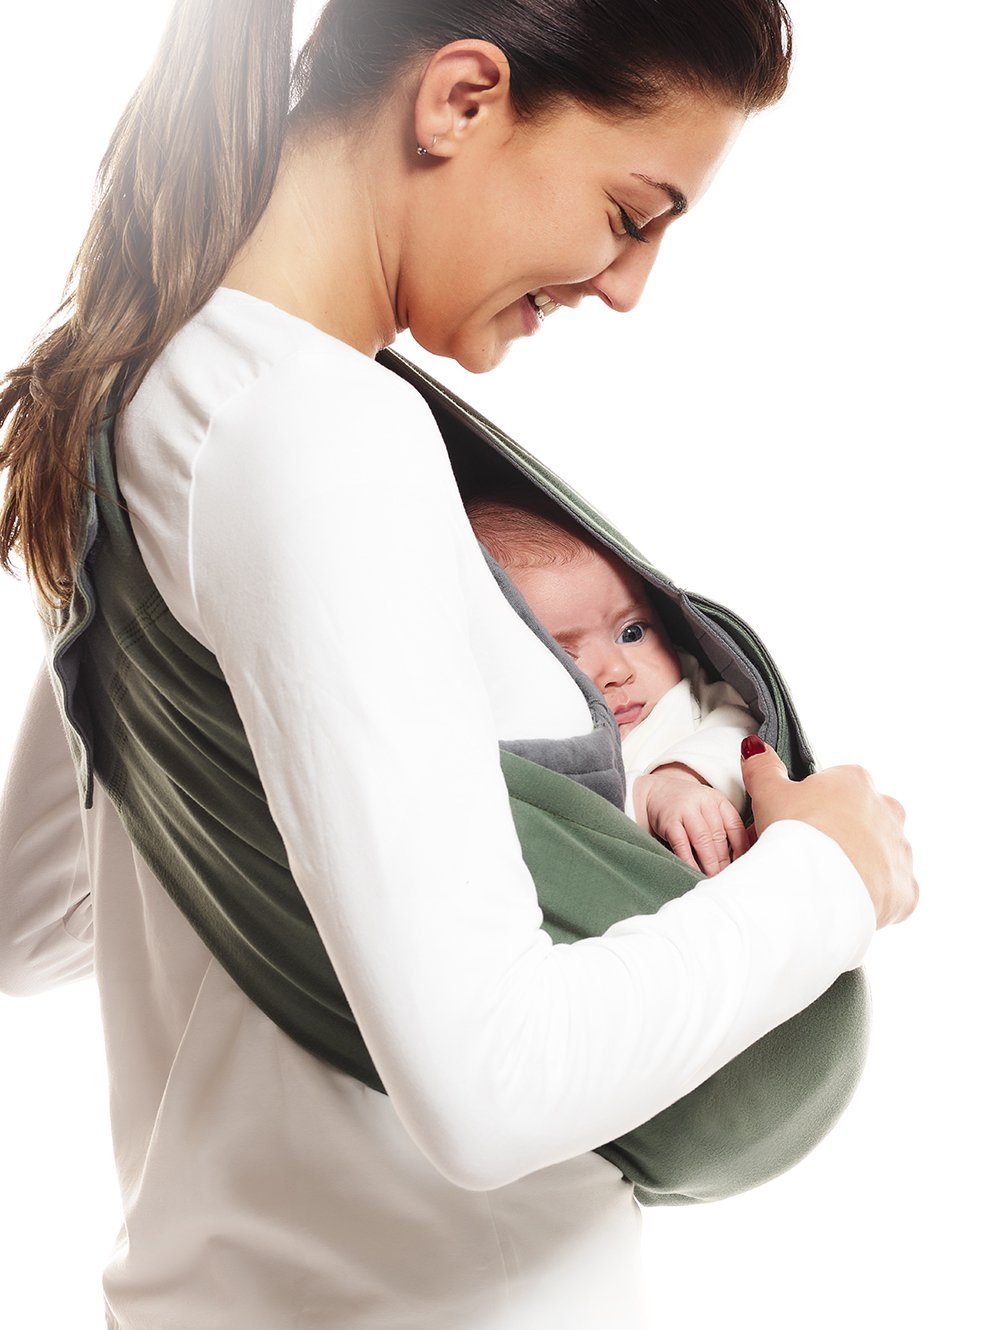 Wallaboo Wrap Sling Carrier Connection, Easy Adjustable, Ergonomic, 3 Carrying Positions, Newborn 8lbs to 33 lbs, Soft Breathable Cotton, 3 Sitting Positions, EU Safety Tested, Color: Green / Grey Wallaboo One size fits all, adjustable in size to fit every mum and dad Can be used for a preemie up to 33 pound child Keeps baby warm in 3 different positions: sleep, sit and active 4